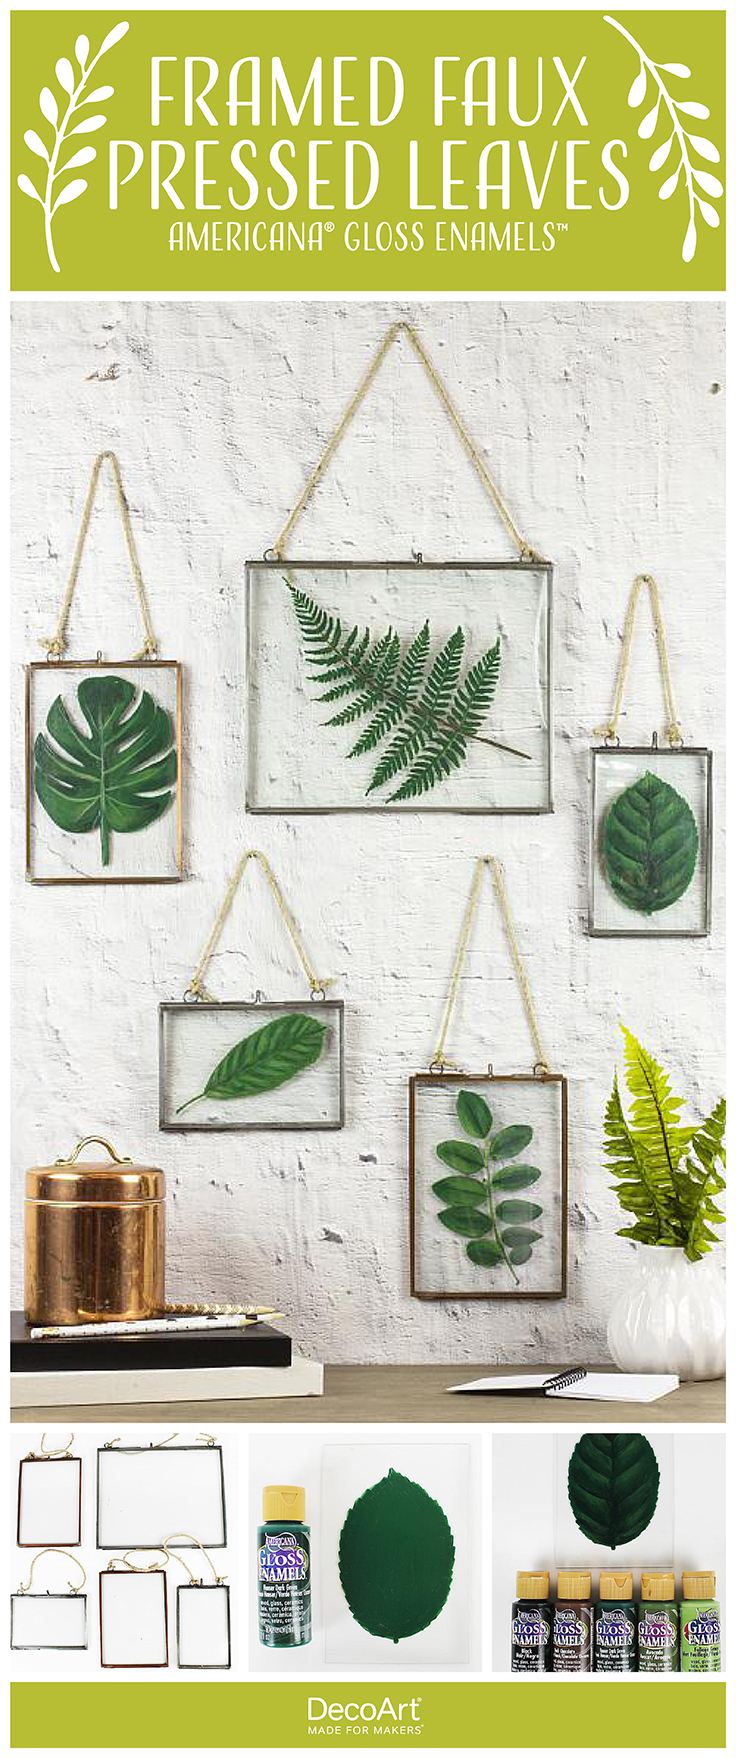 Framed Faux Pressed Leaves